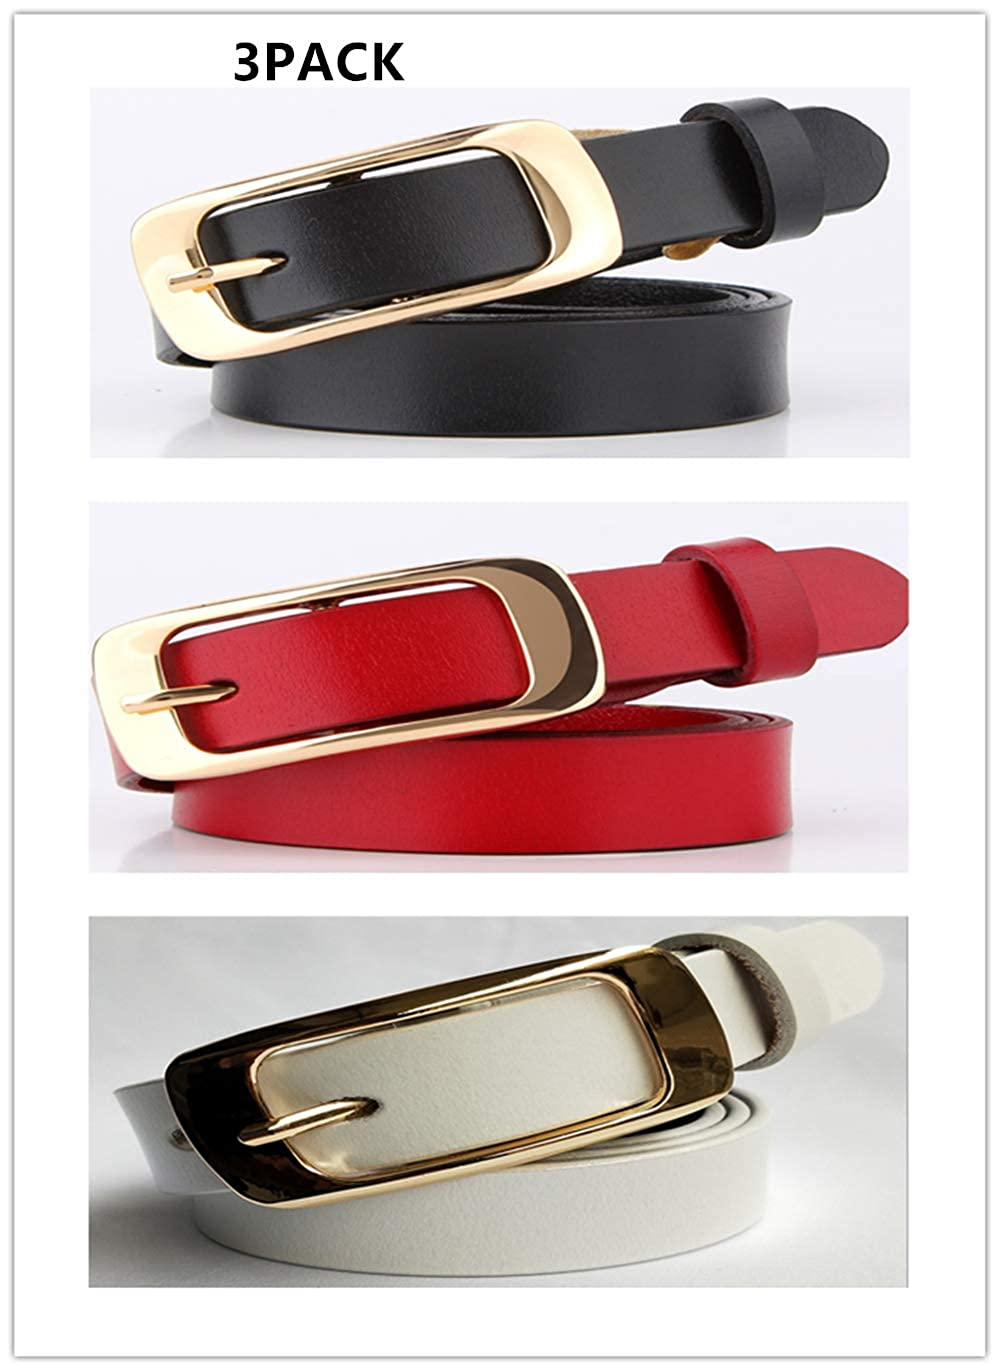 Blackredwhite3pack Women's Hollow Flower Genuine Cowhide Leather Belt With Alloy Buckle